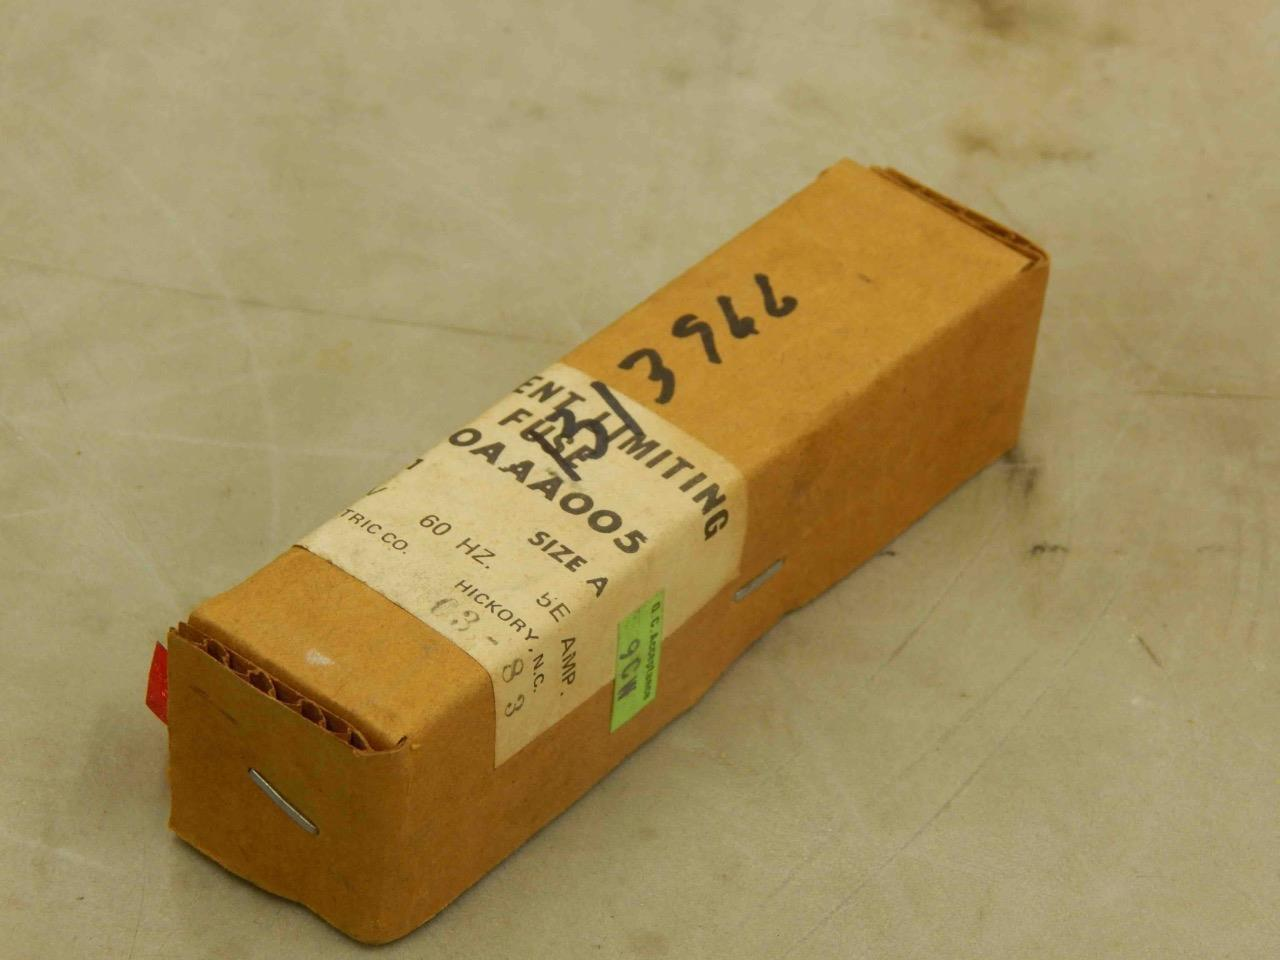 hight resolution of  351 general electric ge 9f60aaa005 type ej 1 current limiting fuse 5e amp